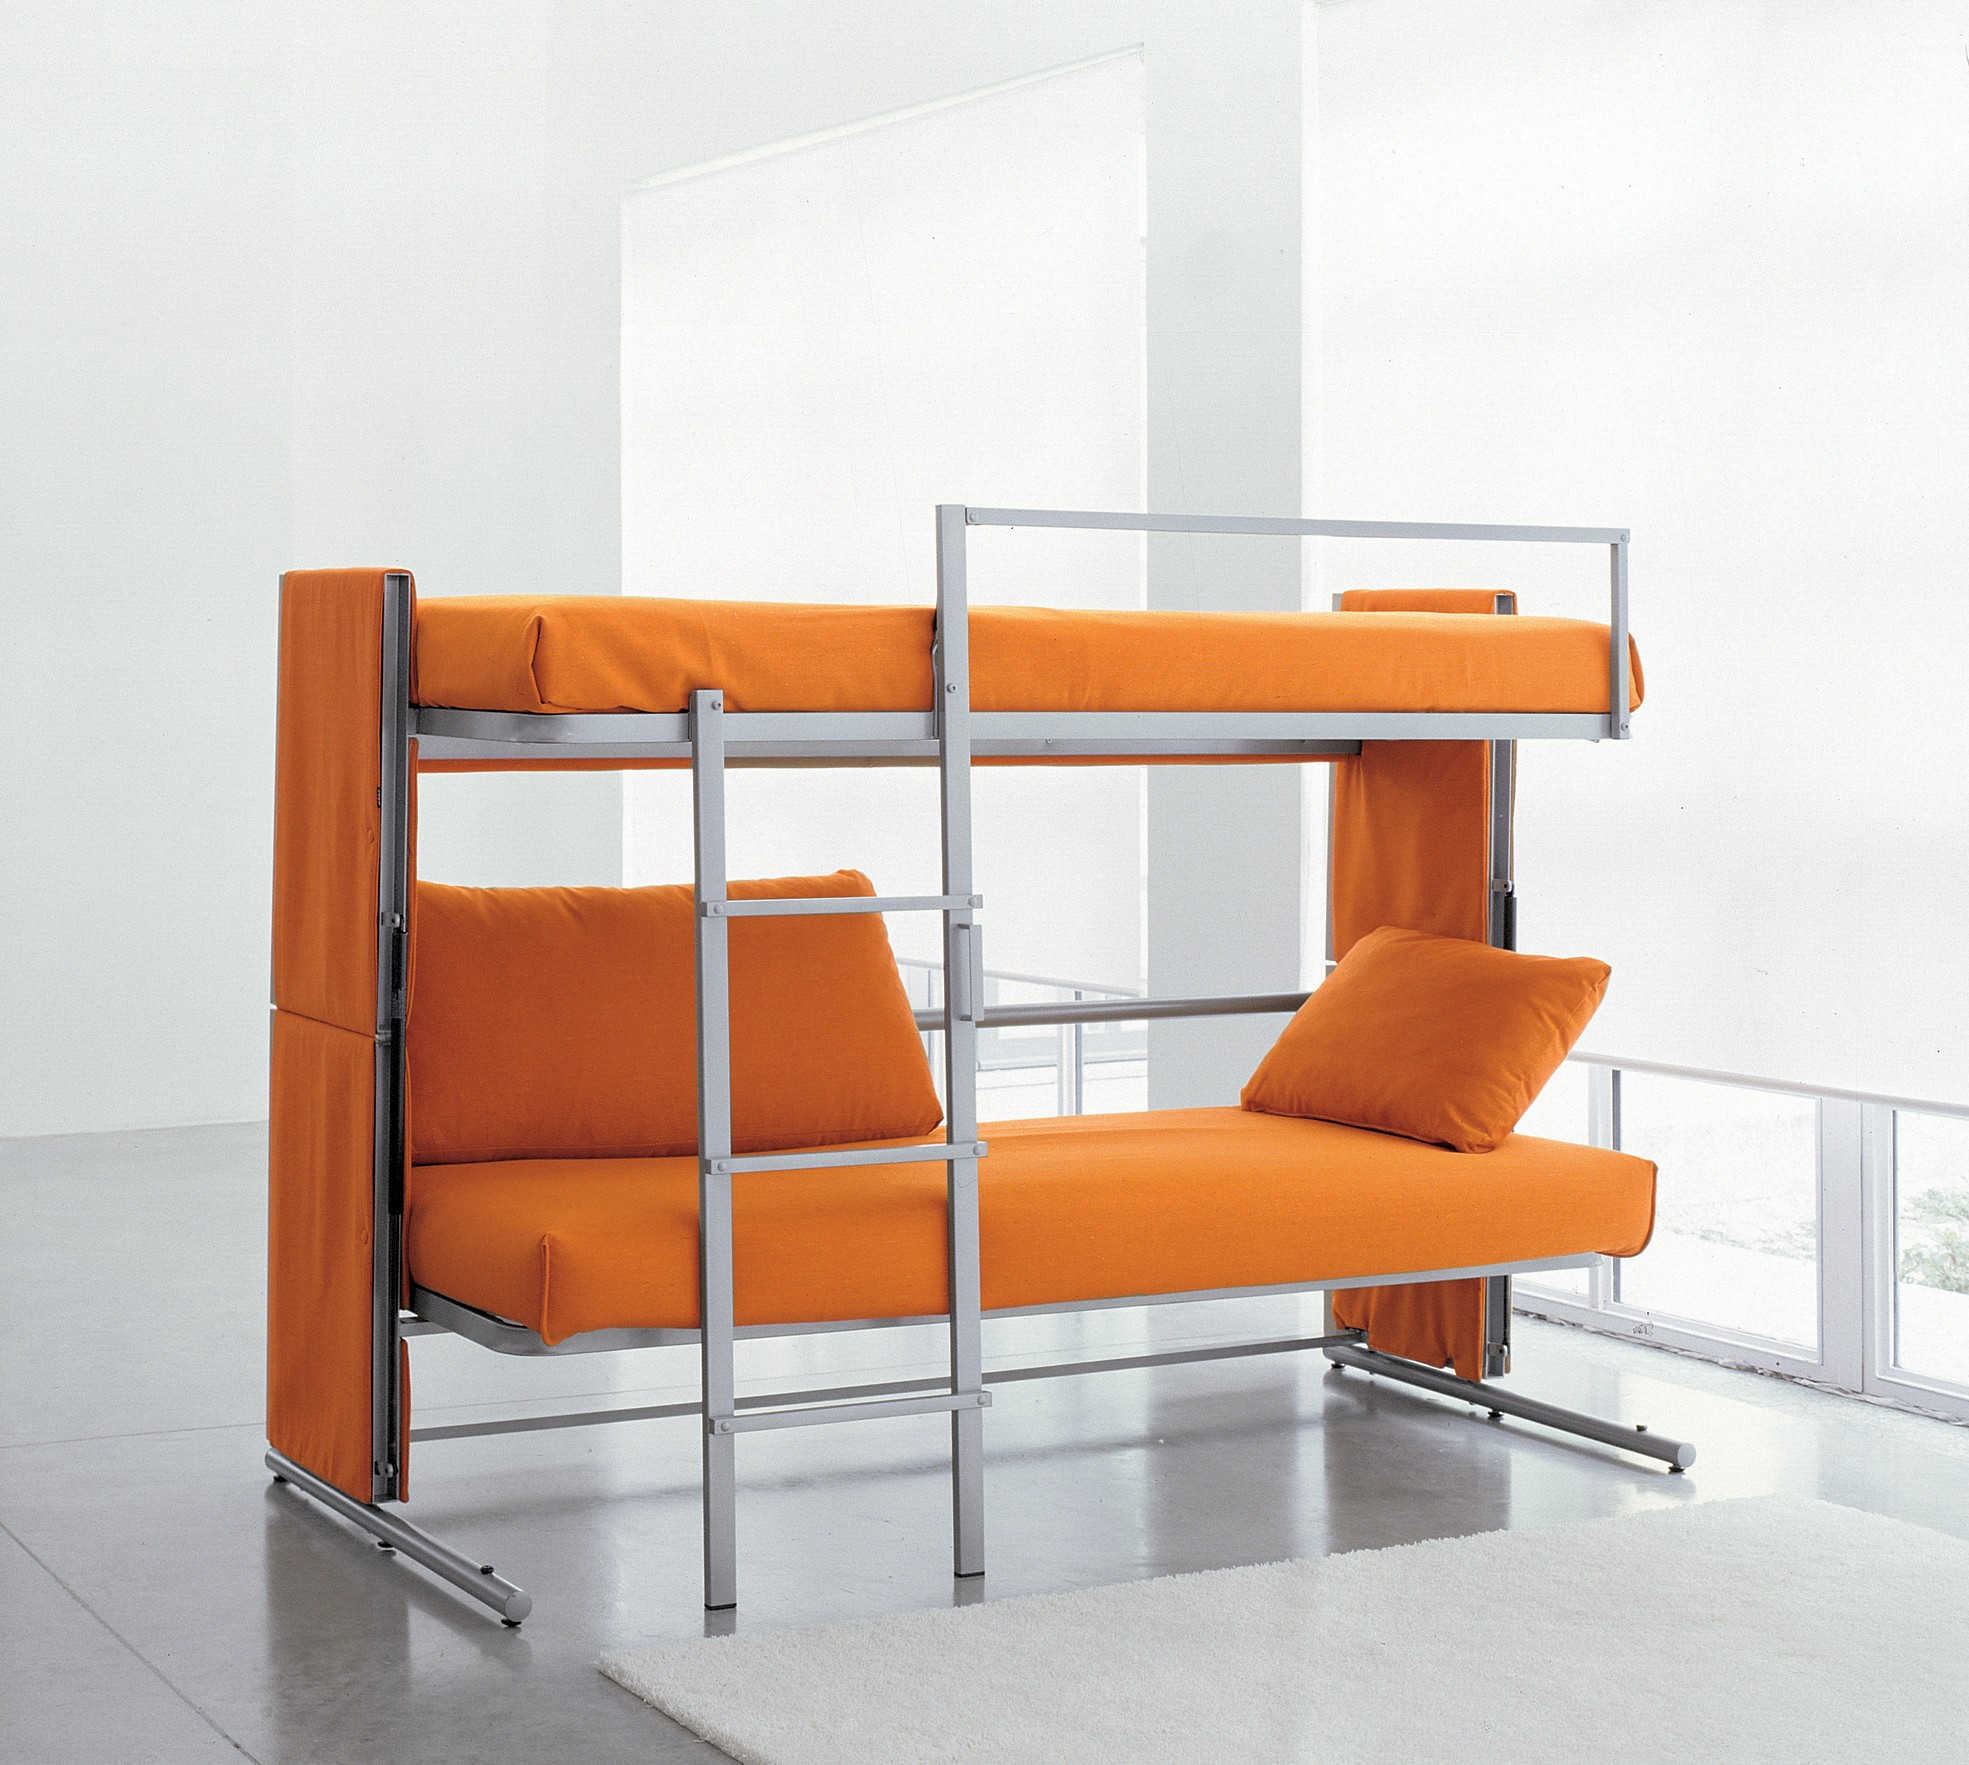 Sofa Bunk Bed top Doc A sofa Bed that Converts In to A Bunk Bed In Two Secounds Wallpaper